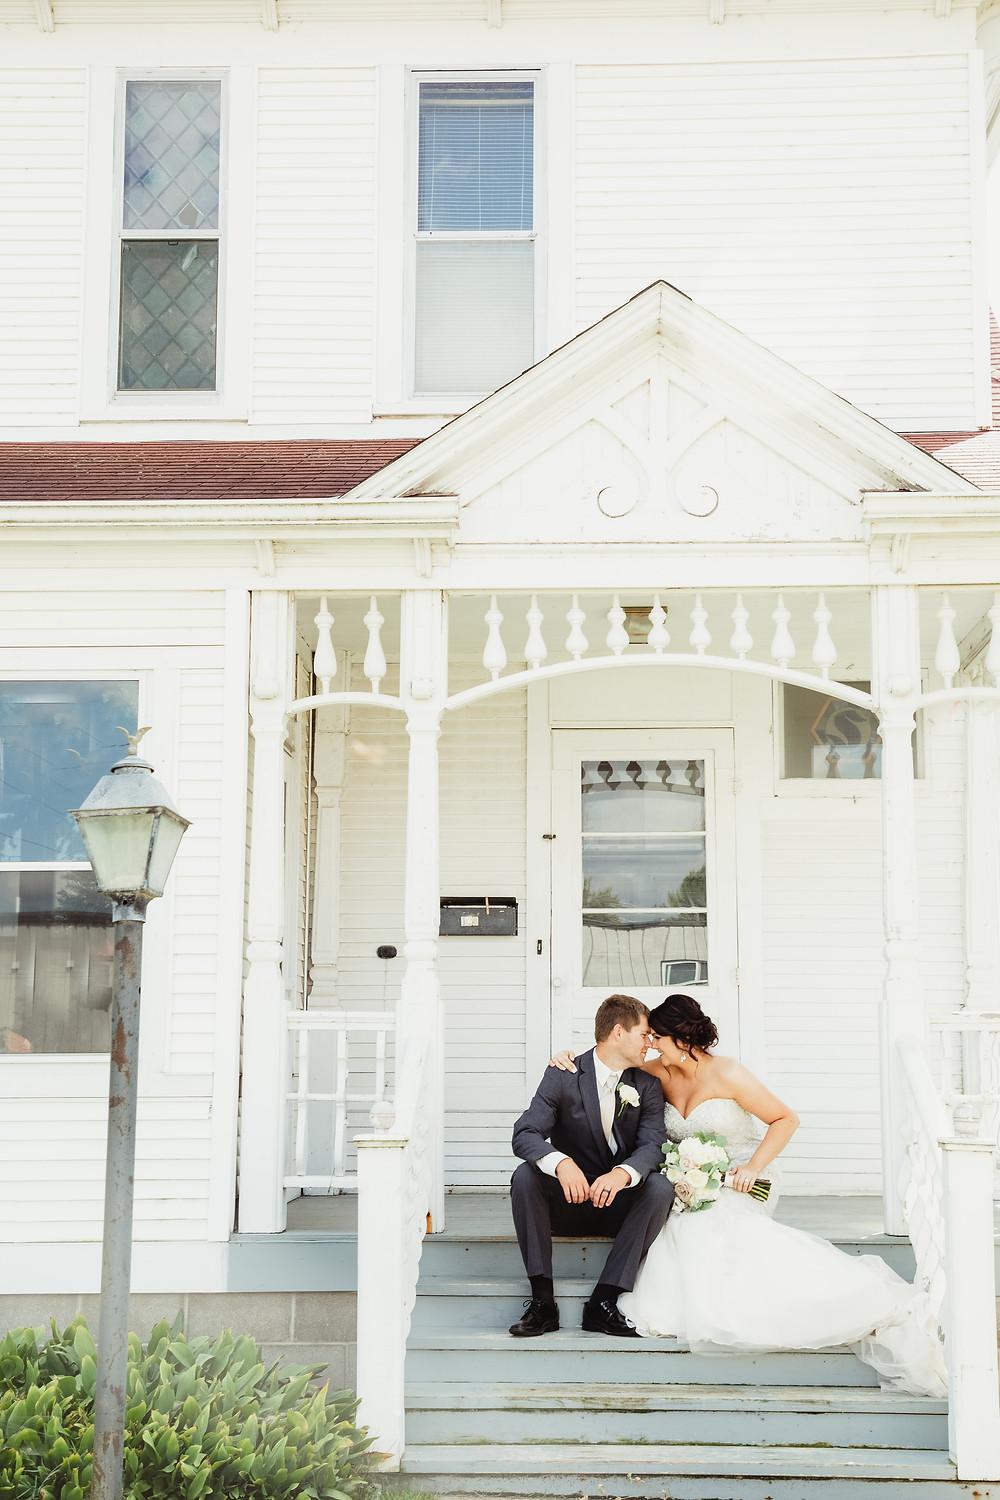 Beautiful bride and groom on a white porch.